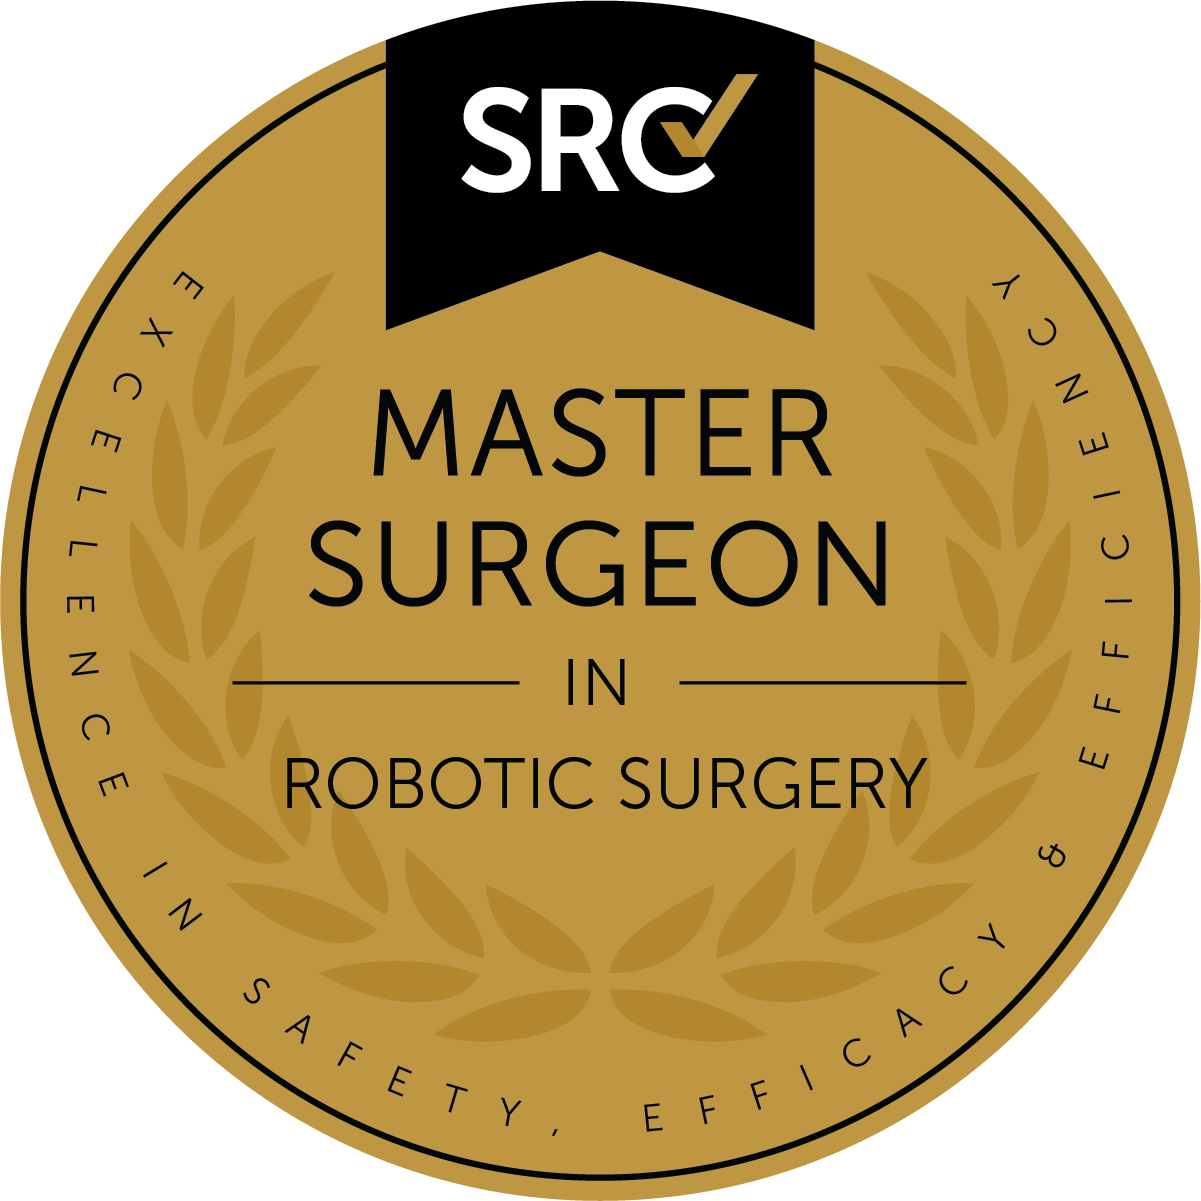 Master Surgeon In Robotic Surgery